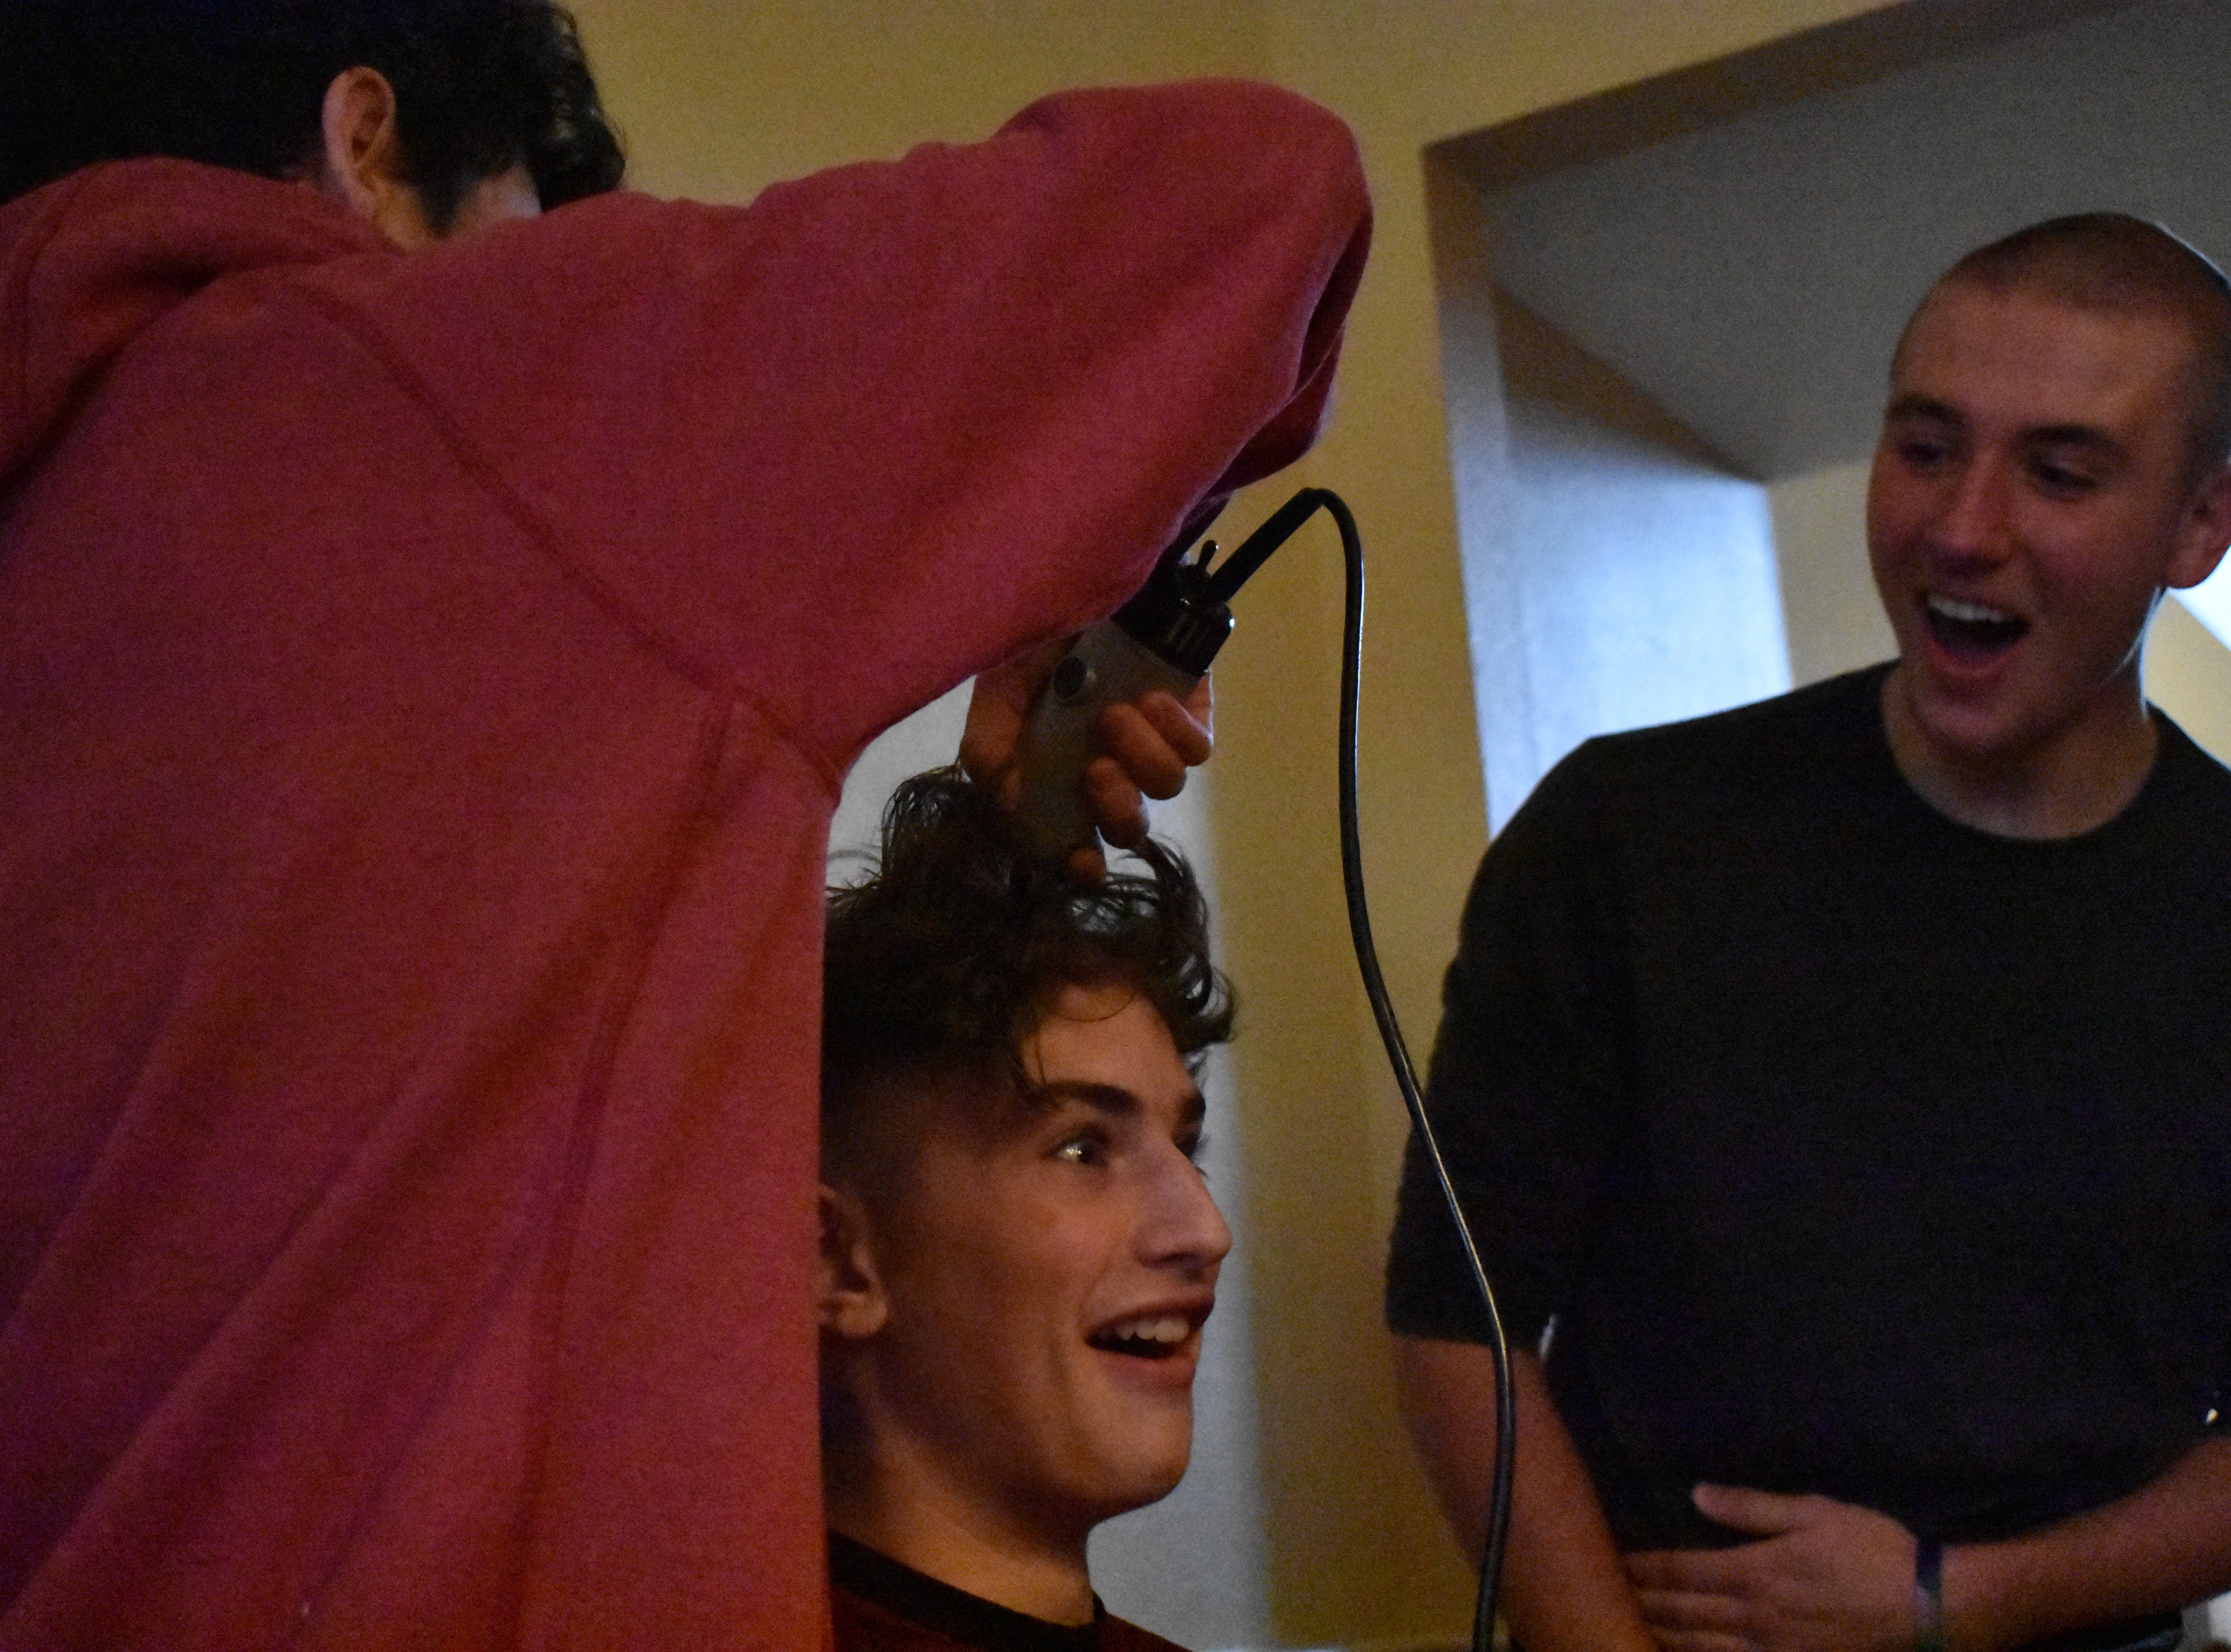 Leo Von Bargen reacts to Joseph Naddy shaving his head while Joe Urynowicz looks on during the Rocky Mountain basketball team's head shaving on Dec. 31, 2018, in support of teammate Carter Edgerely, who was recently diagnosed with bone cancer.